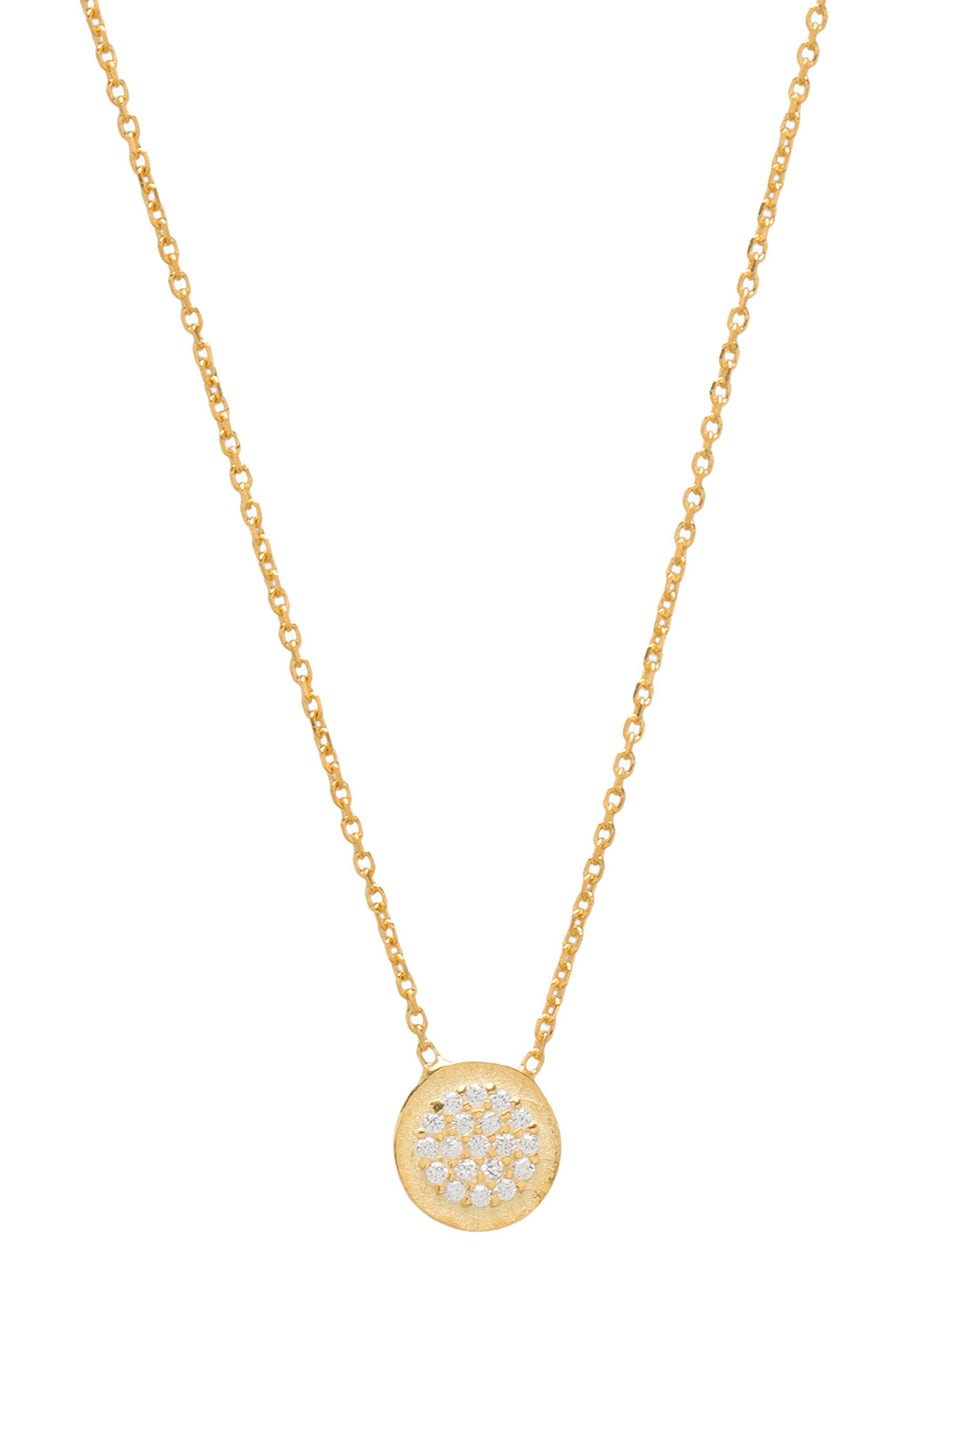 Natalie B Jewelry Natalie B Ottoman Small Disc Necklace in Gold